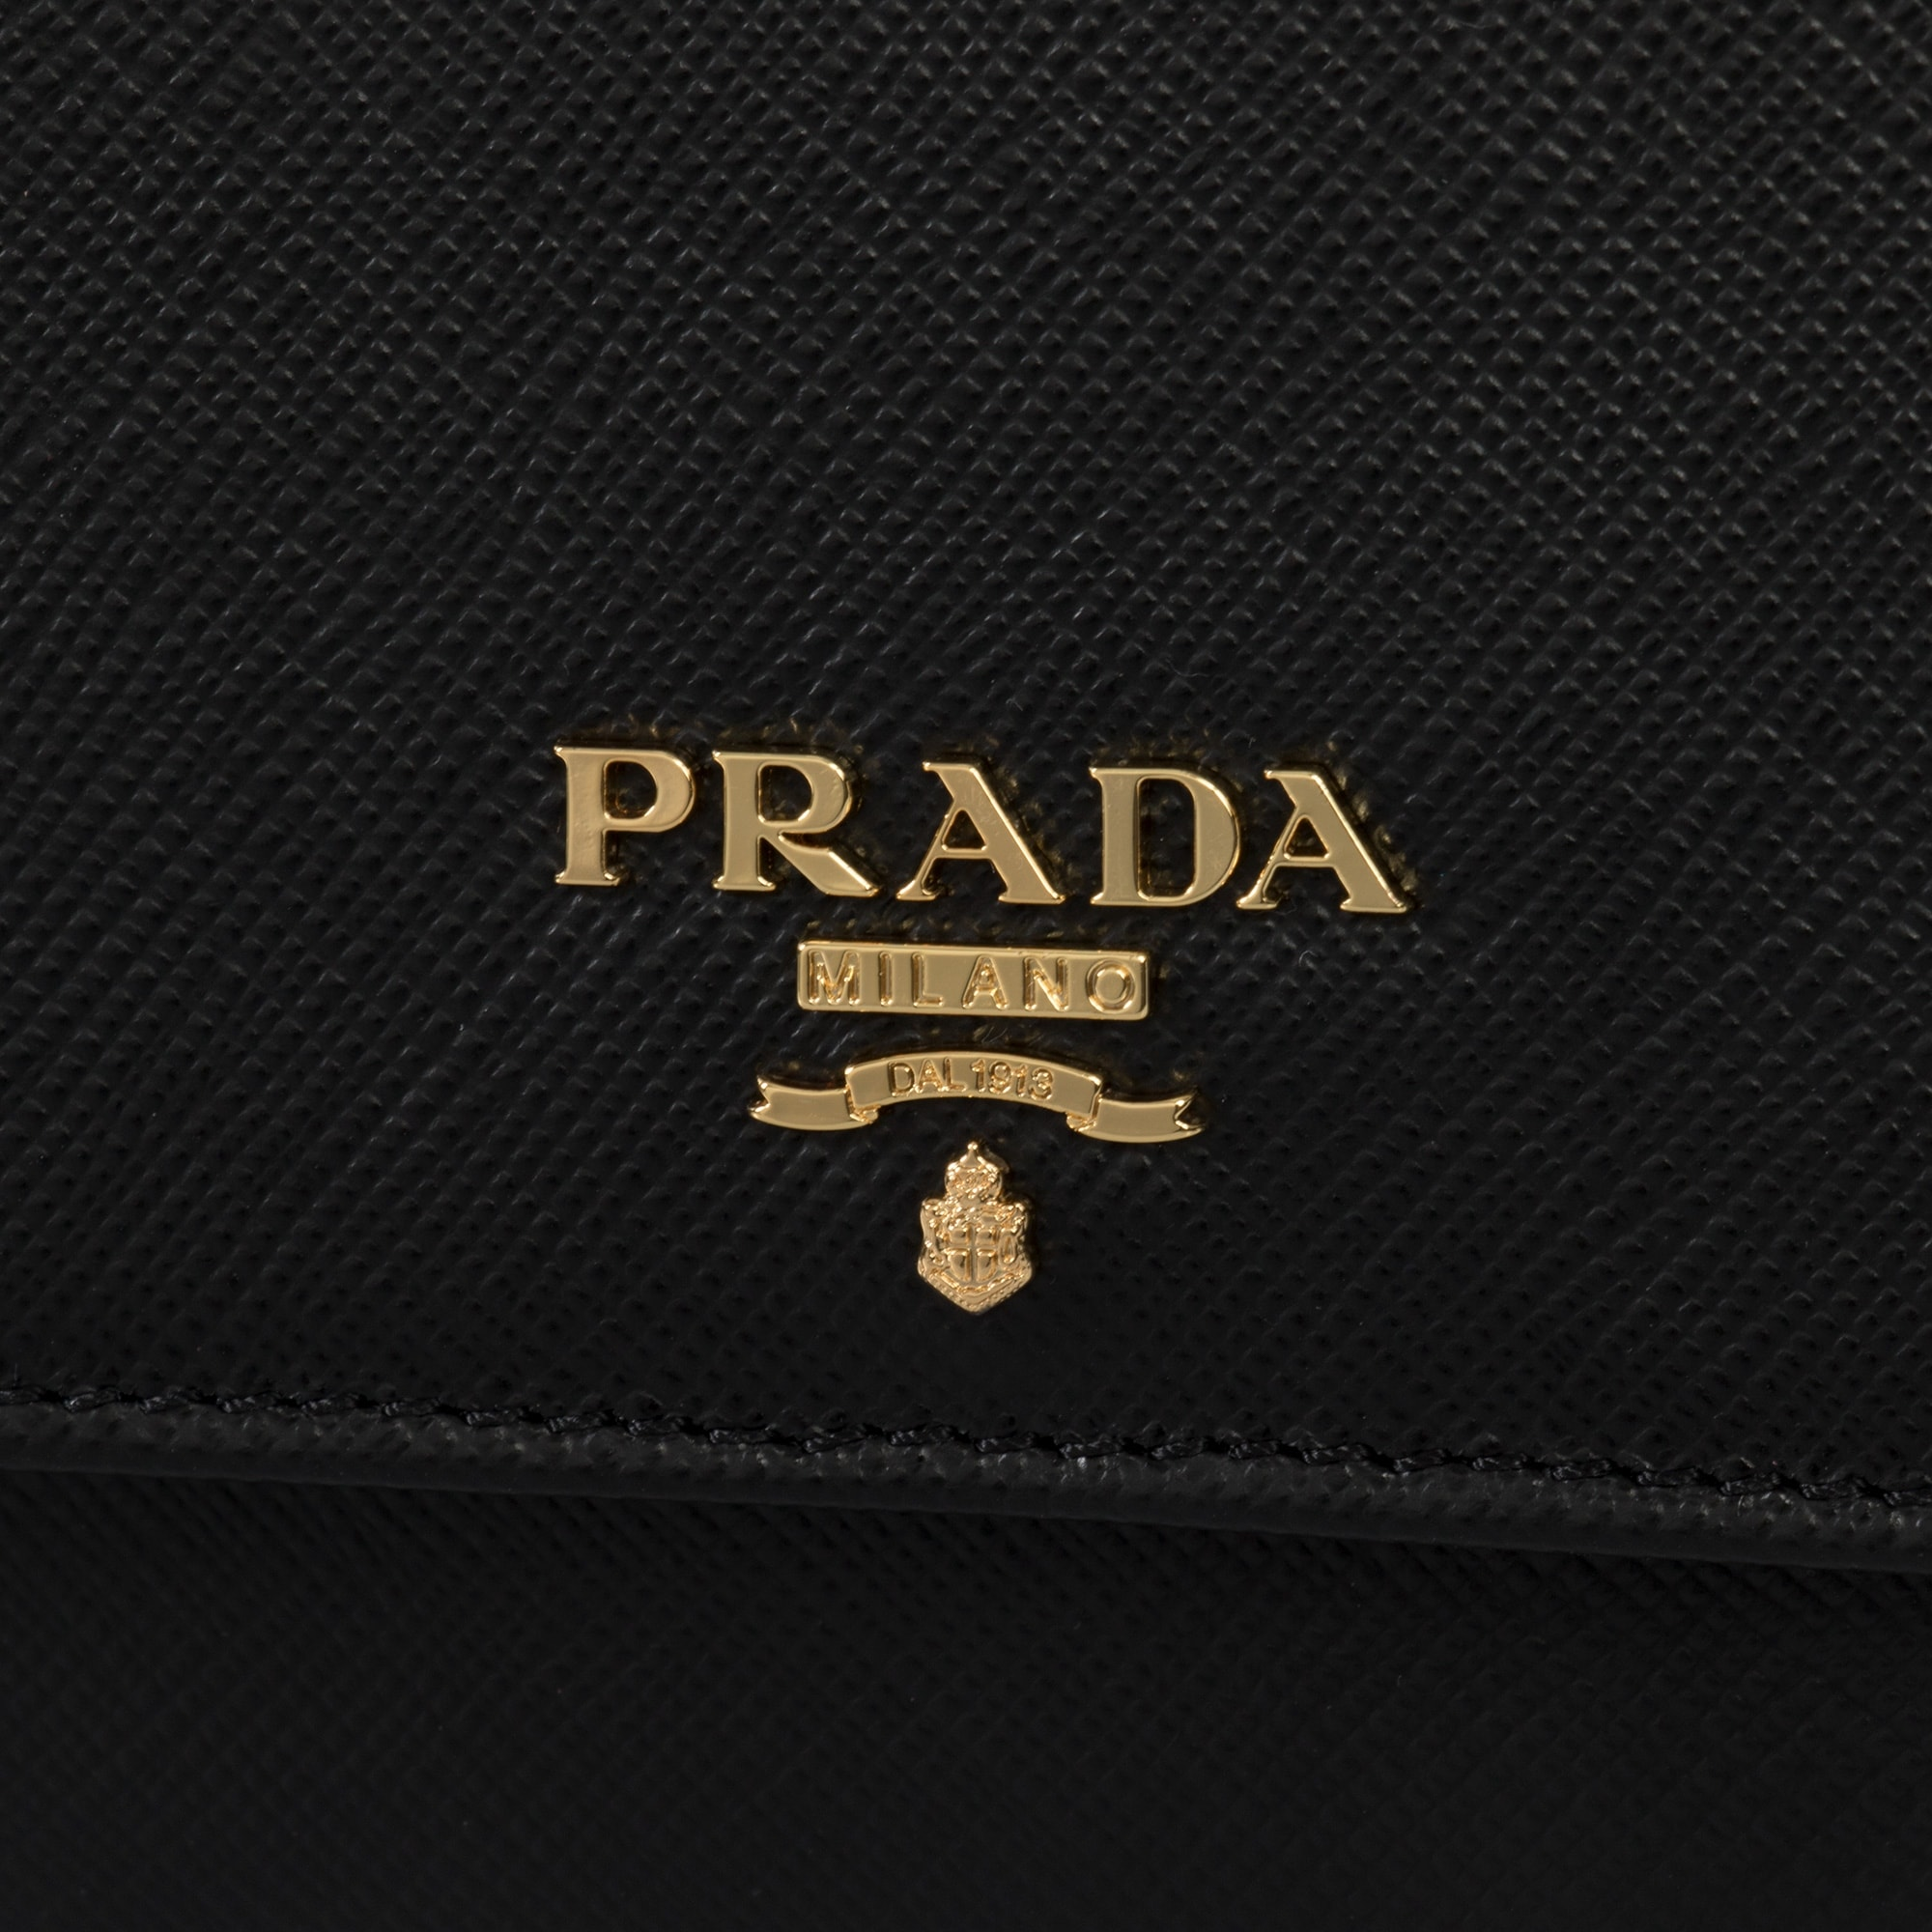 64120d32f1fd Shop Prada Black Saffiano Leather Flap Wallet 1MH523 QWA F0002 - Free  Shipping Today - Overstock - 23080327